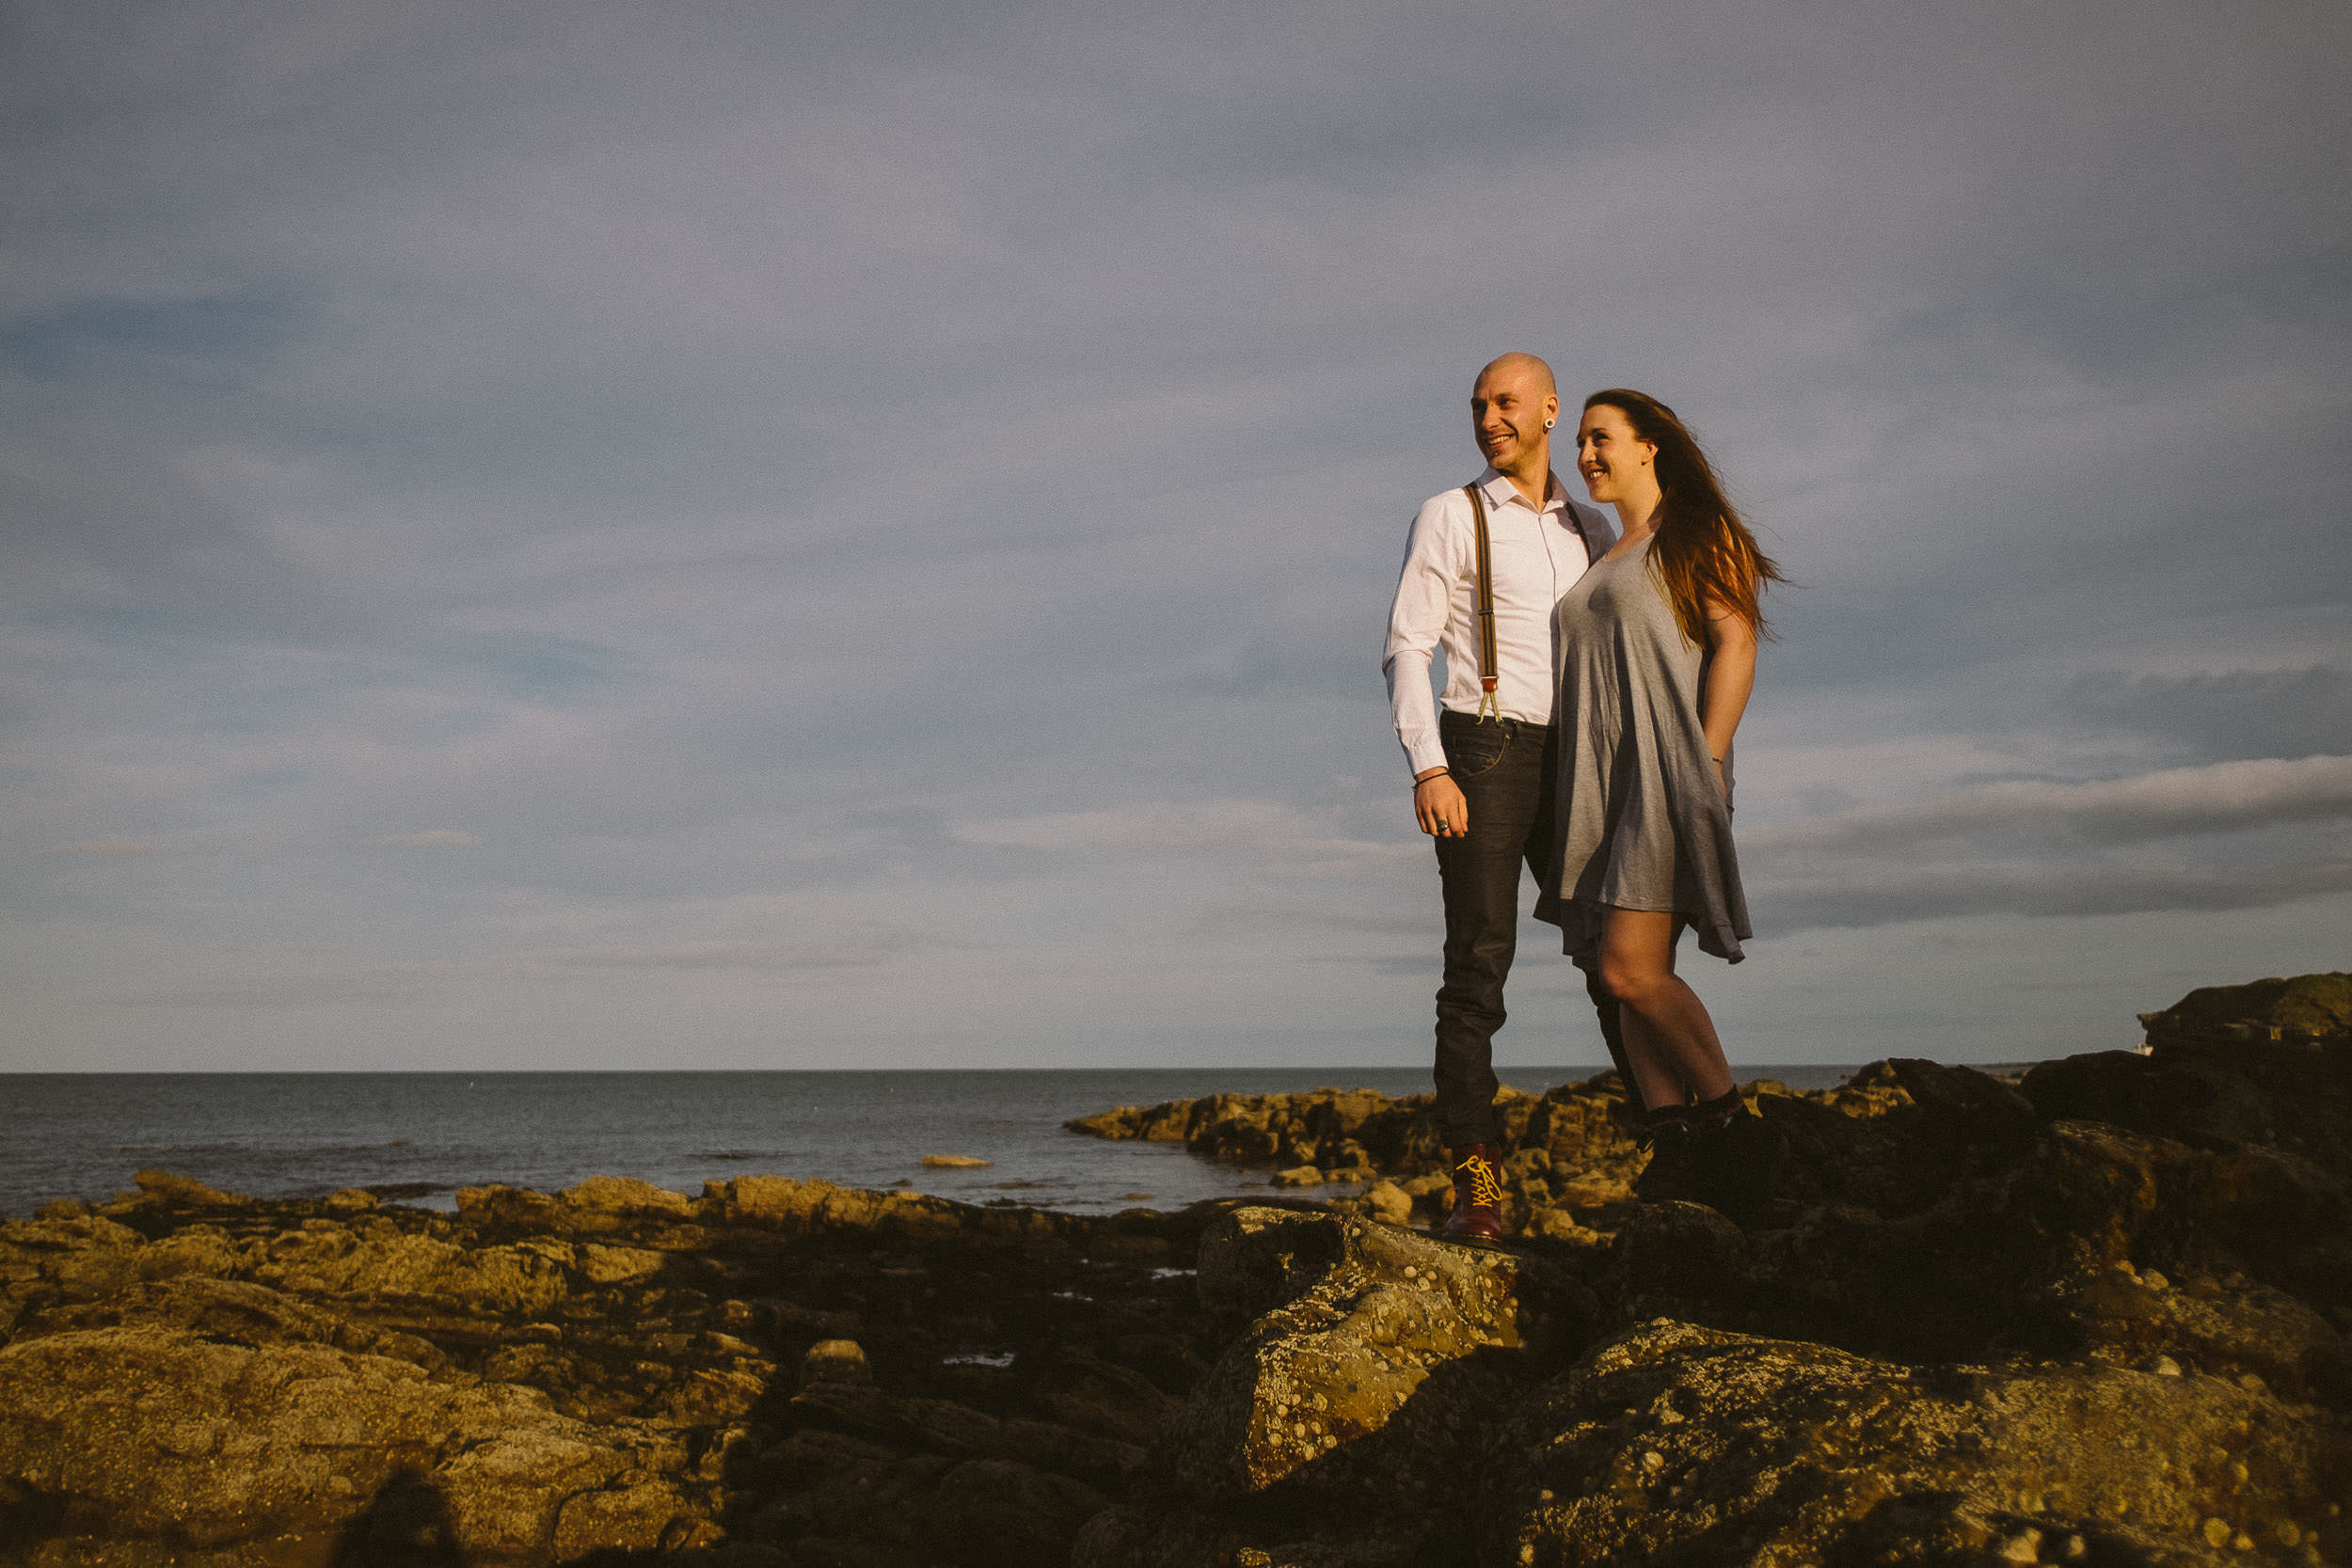 Couple smiling while standing on rock in sea in warm sunlight